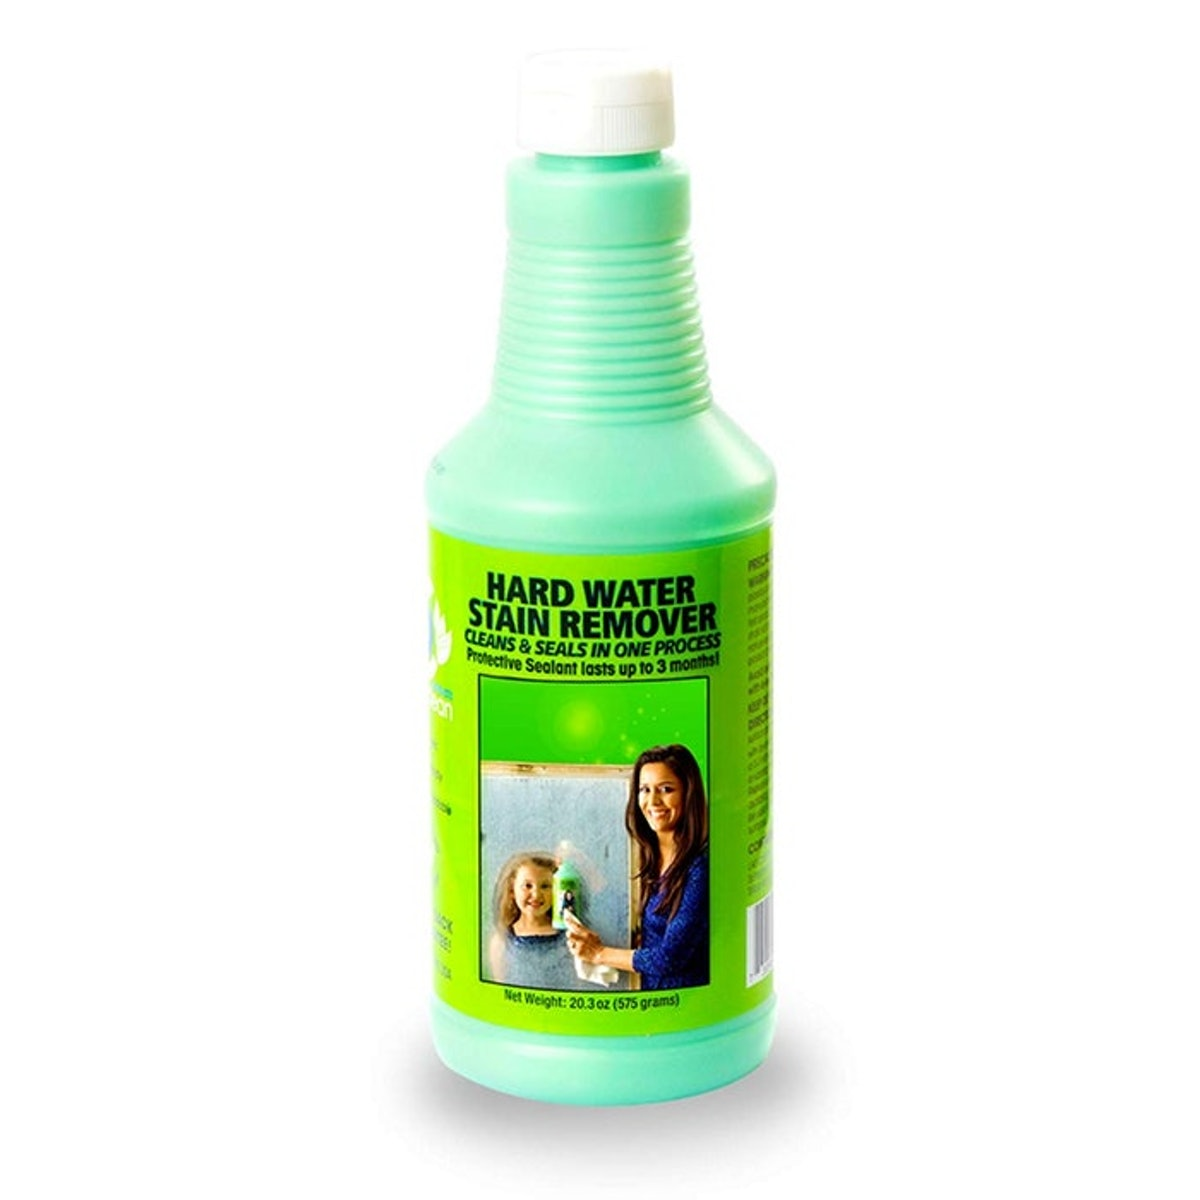 Bio Clean: Hard Water Stain Remover